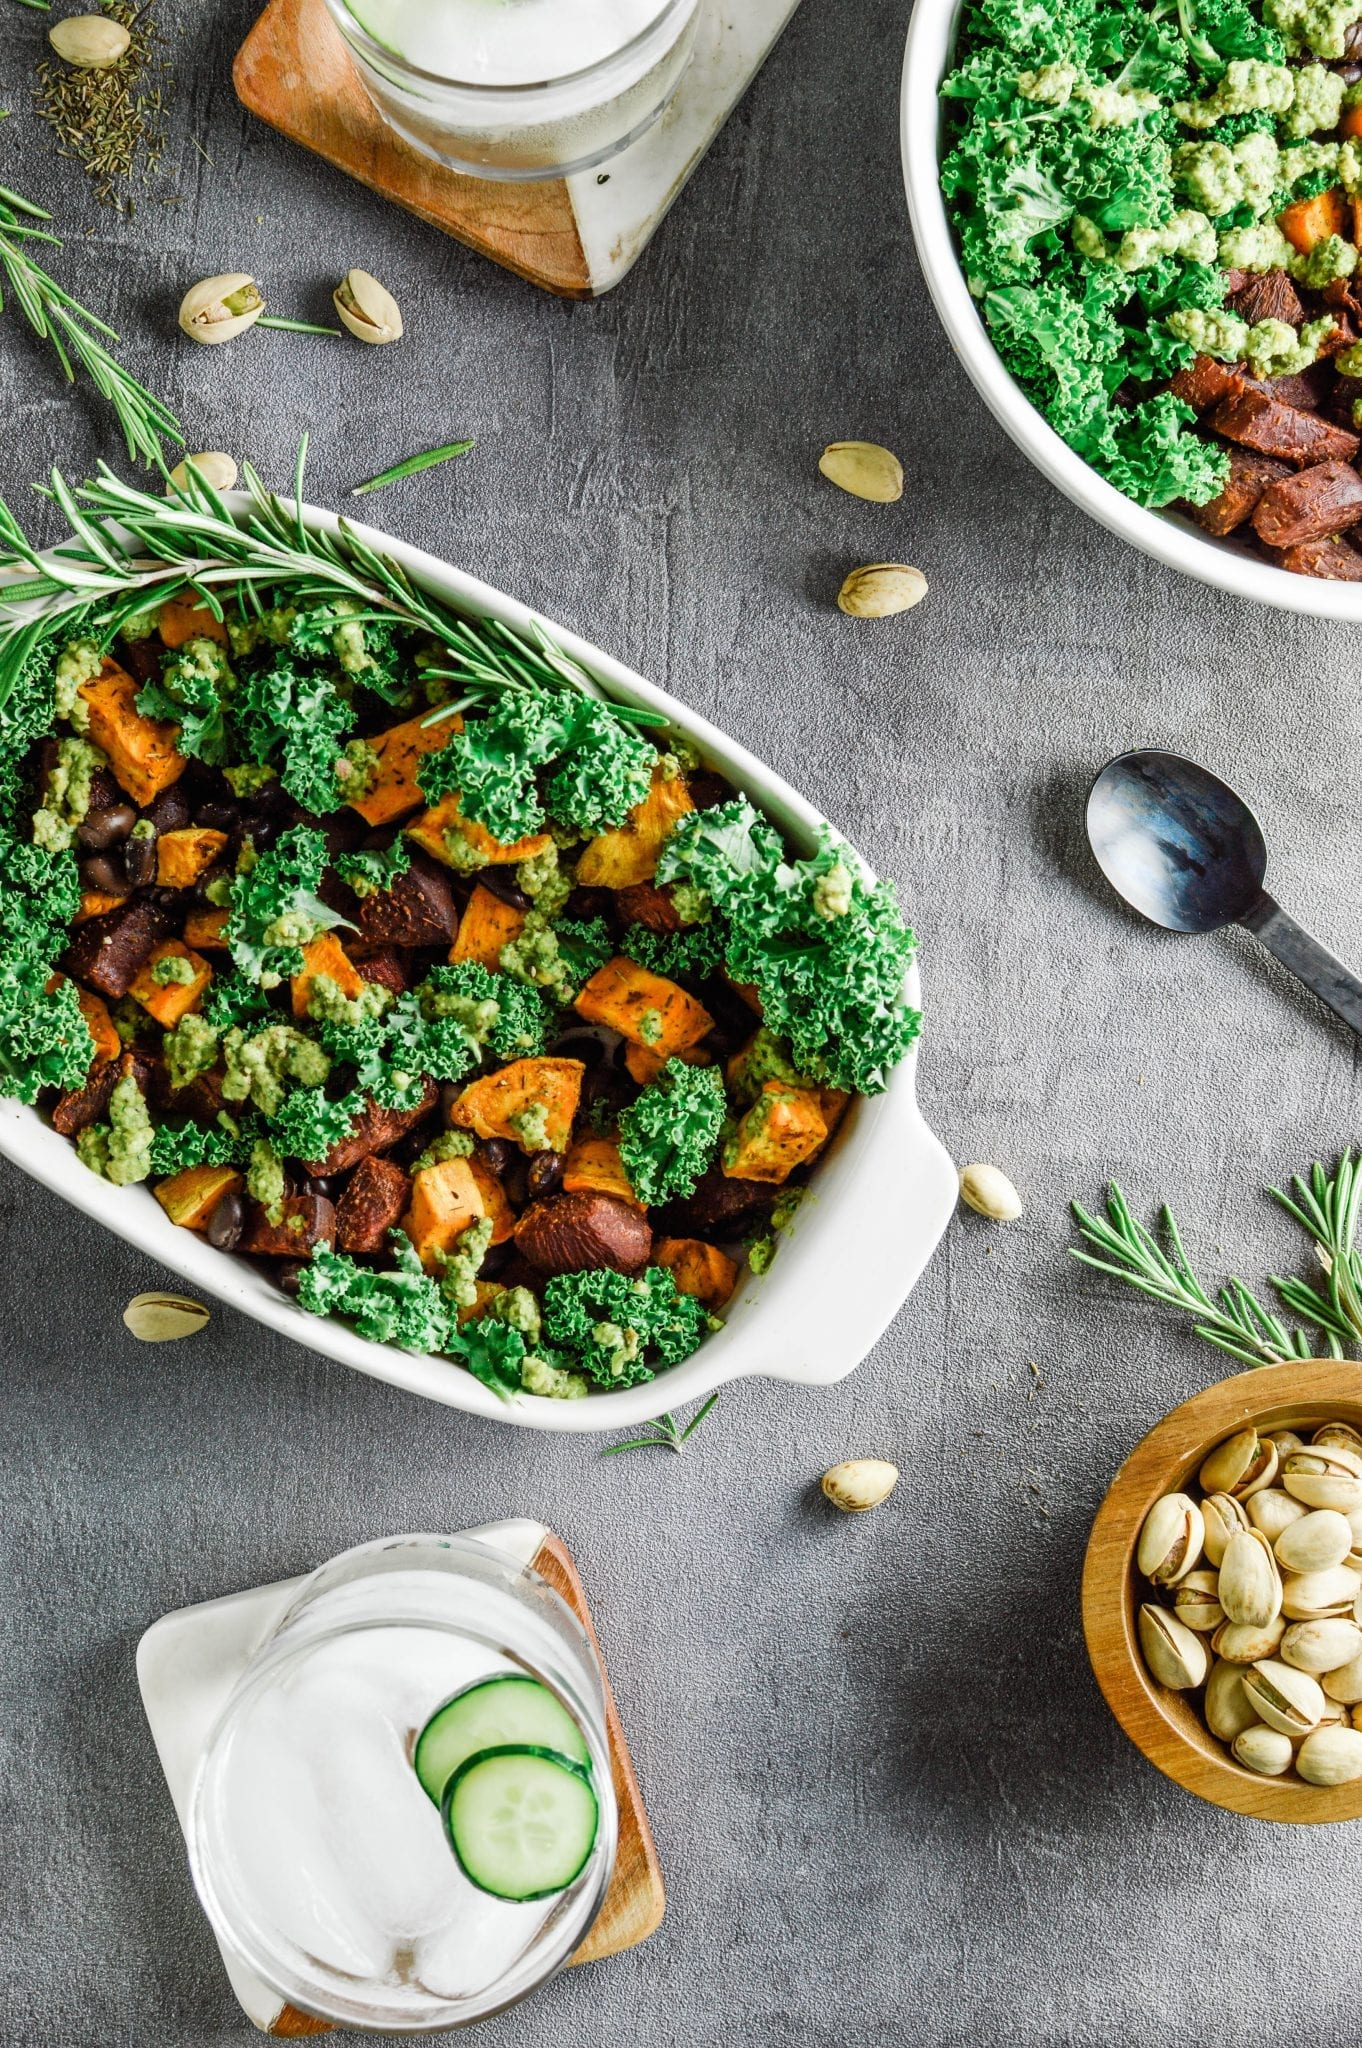 Healthy and Filling Sweet Potato Beet Buddha Bowl with Pistachio Pesto | Vegan | Soy-Free